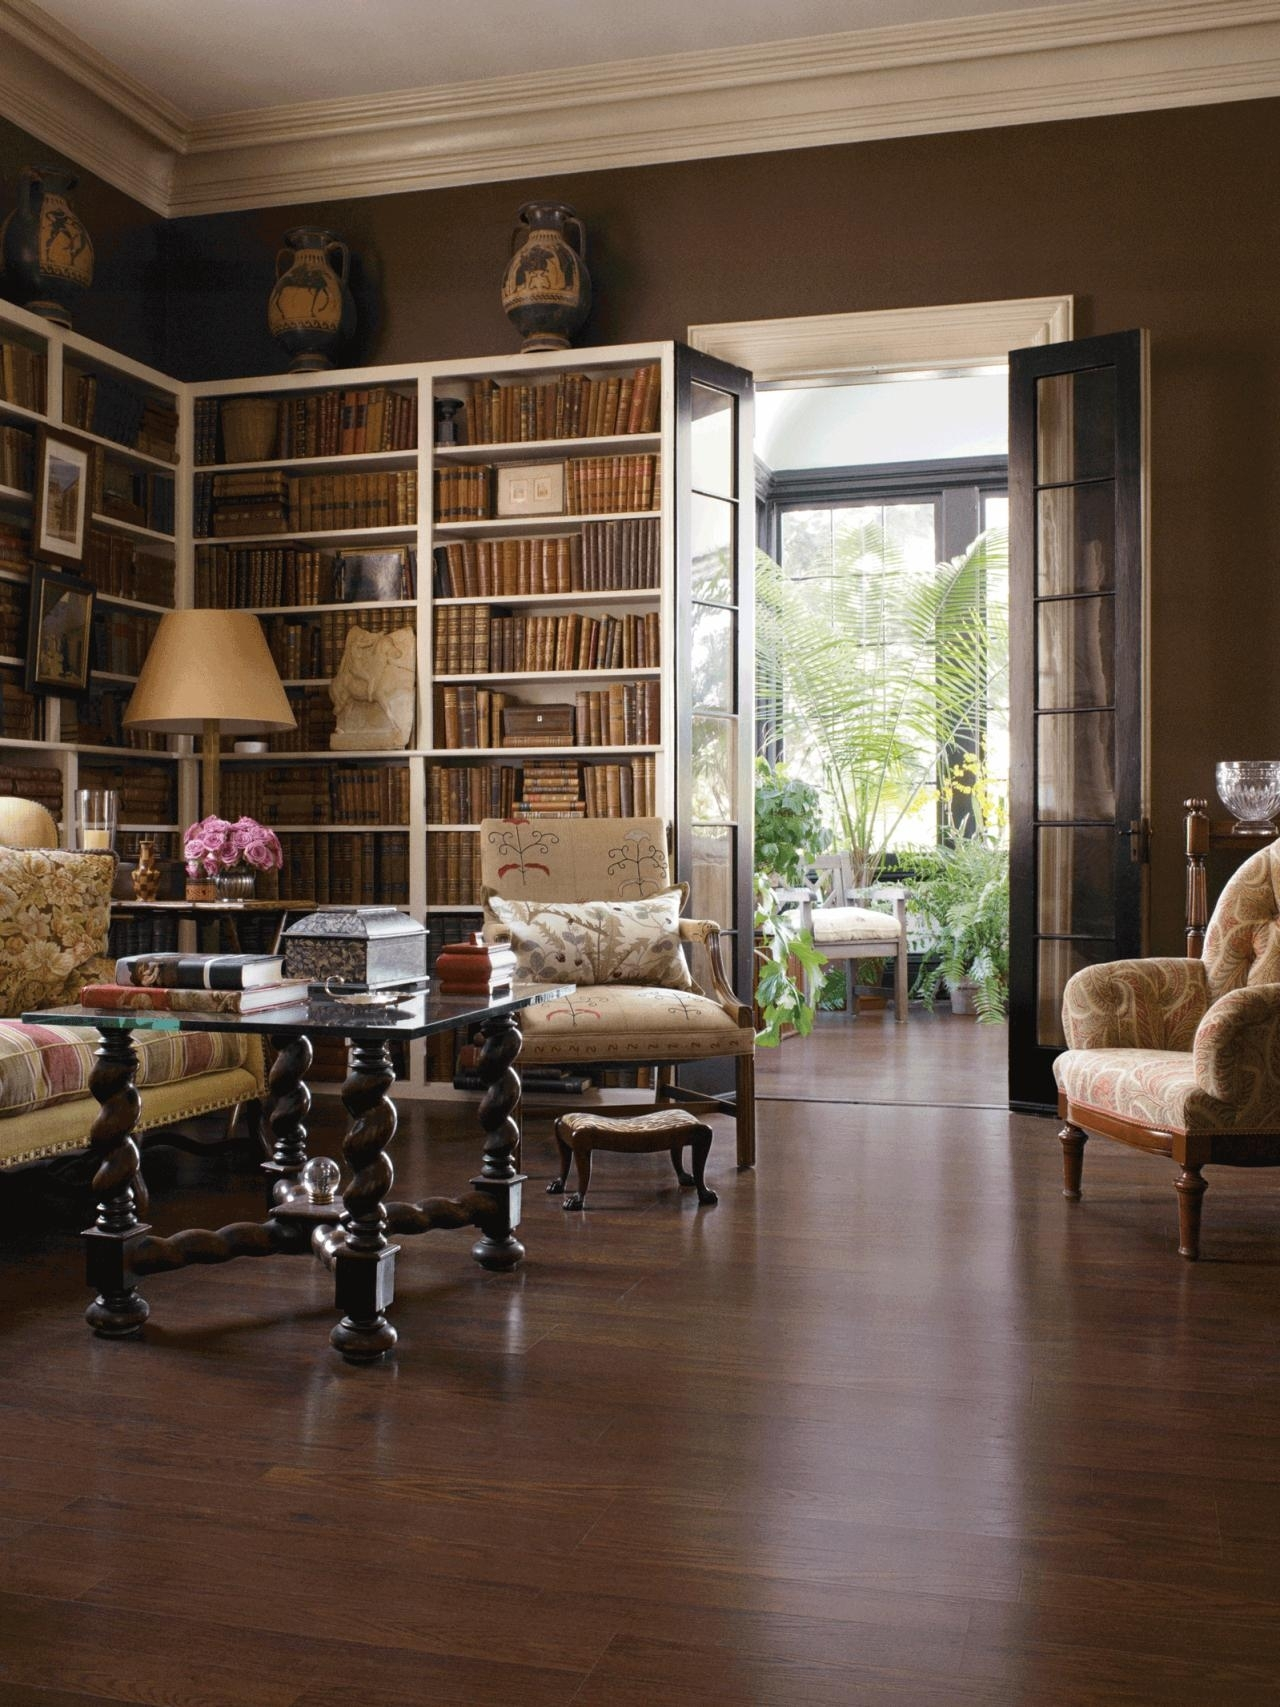 10 Unique Flooring Ideas For Family Room %name